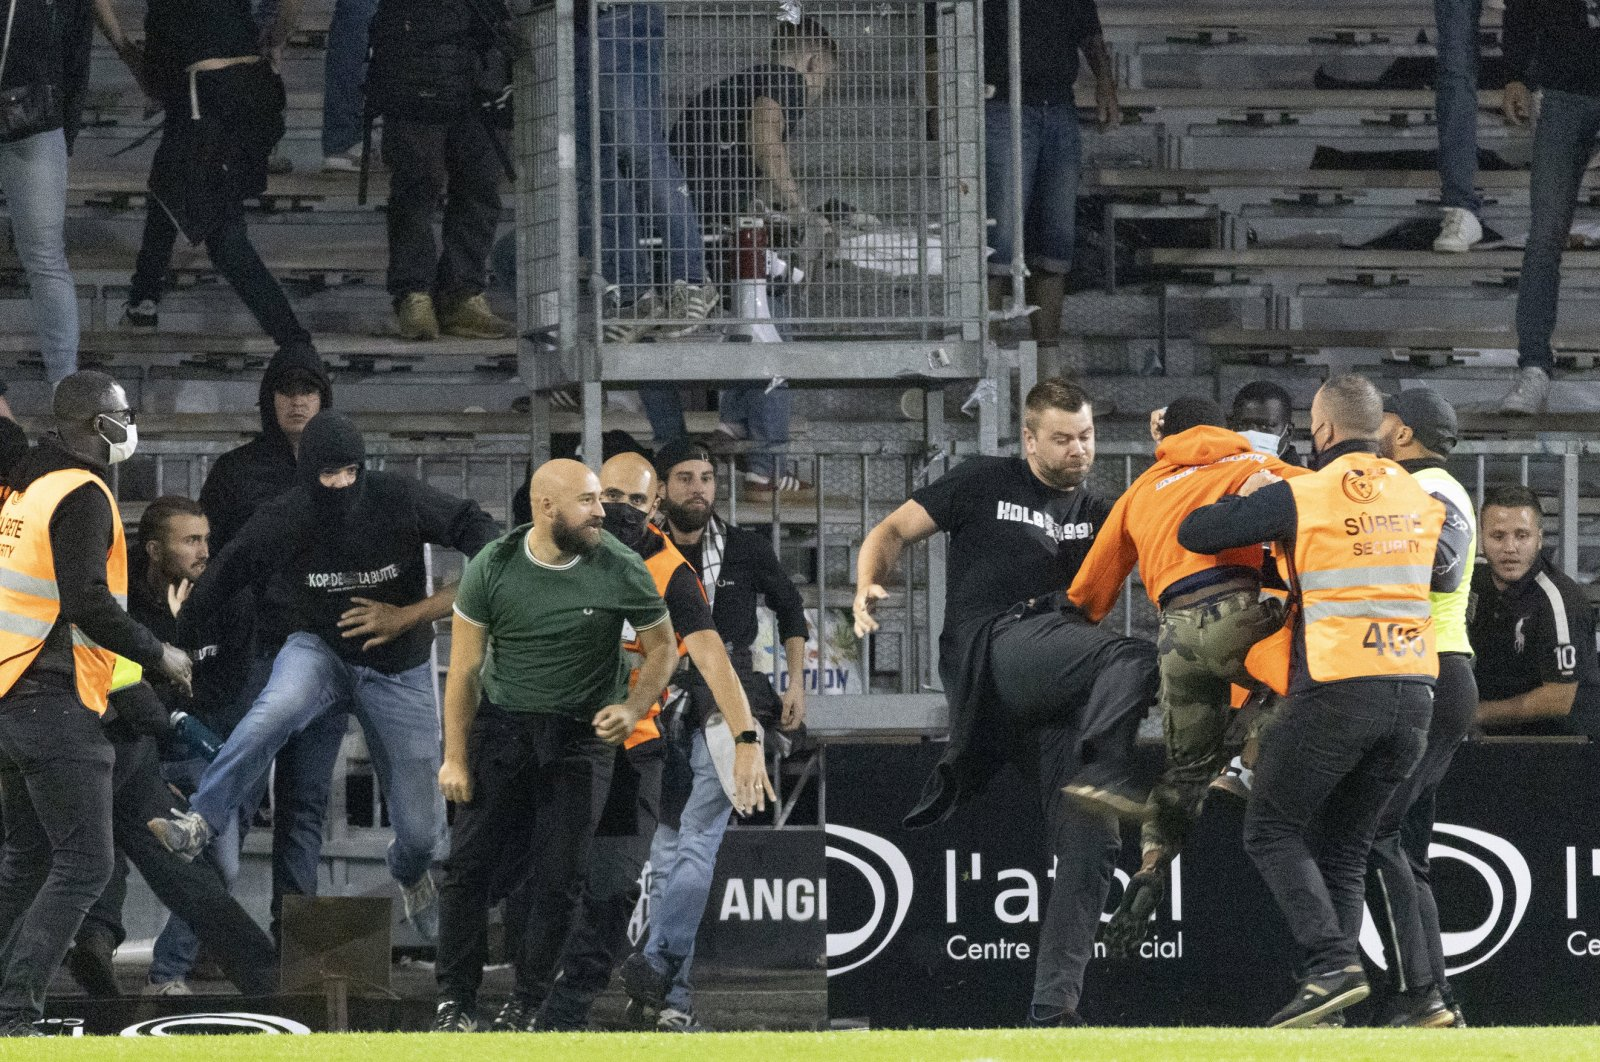 Football supporters clash as angry Marseille supporters invade the field after the Angers-Marseille match, in Angers, France, Sept. 22, 2021. (AP Photo)